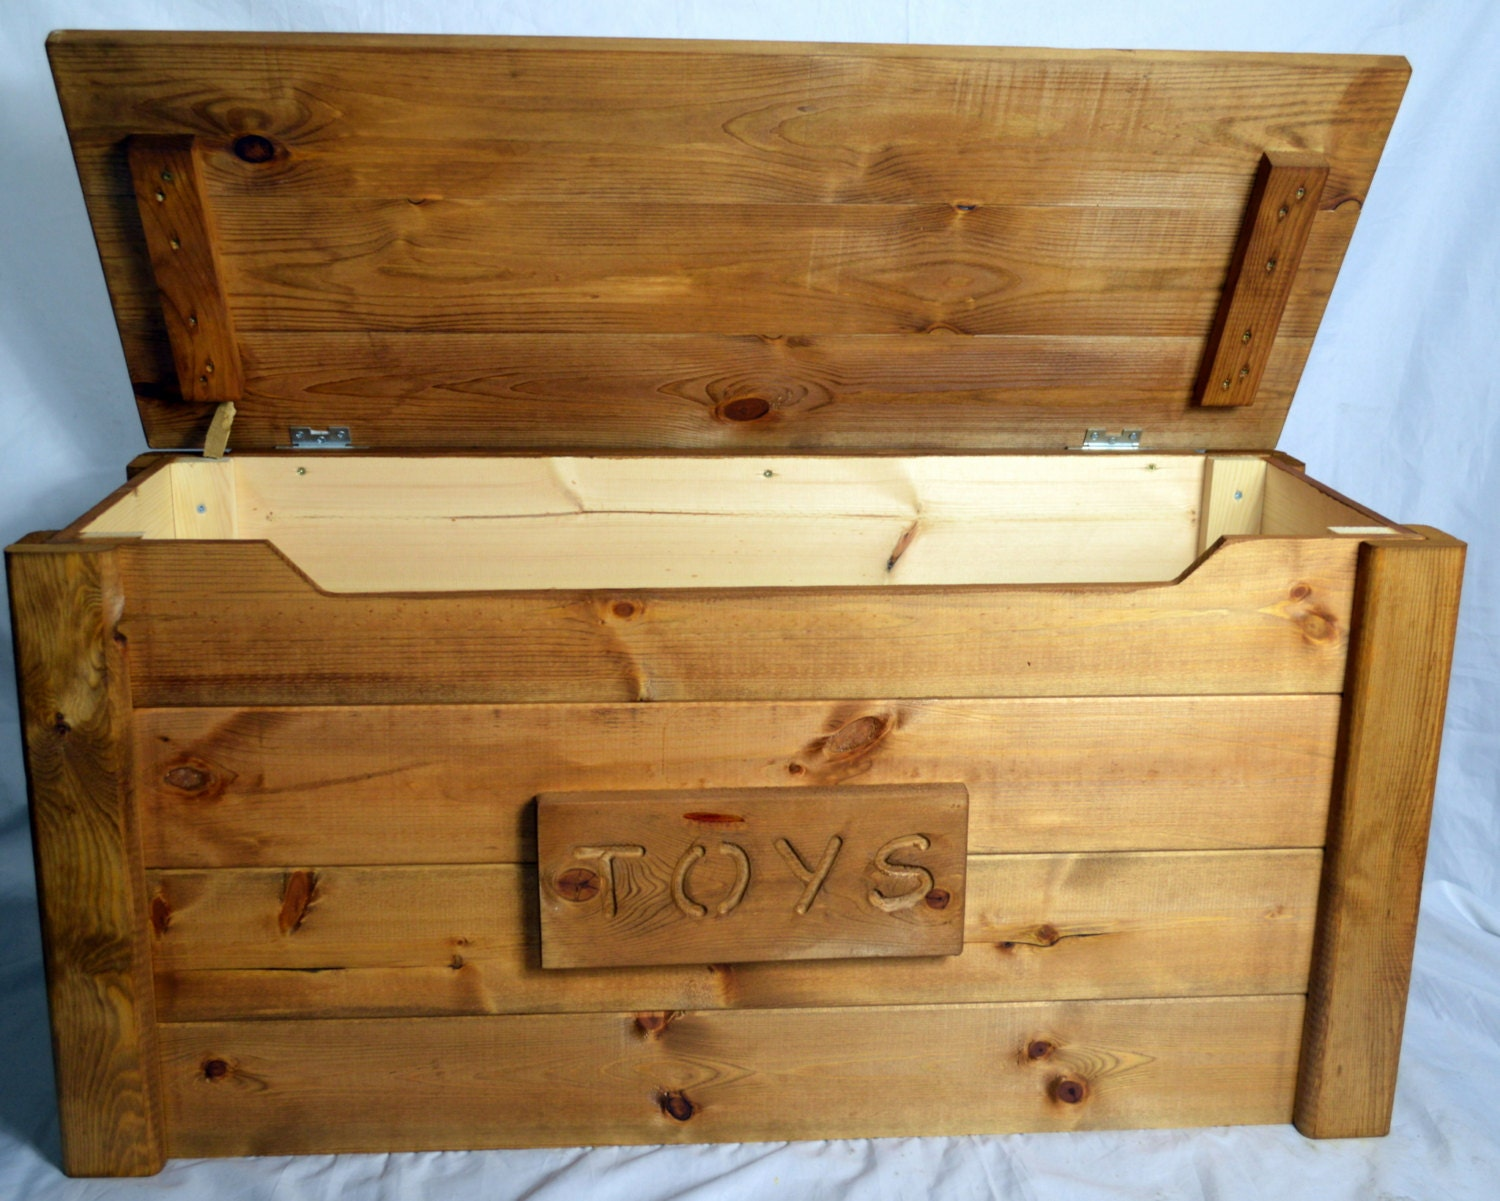 Handcrafted Wooden Rustic Pine Trunk Chest Toy Box Shabby Chic